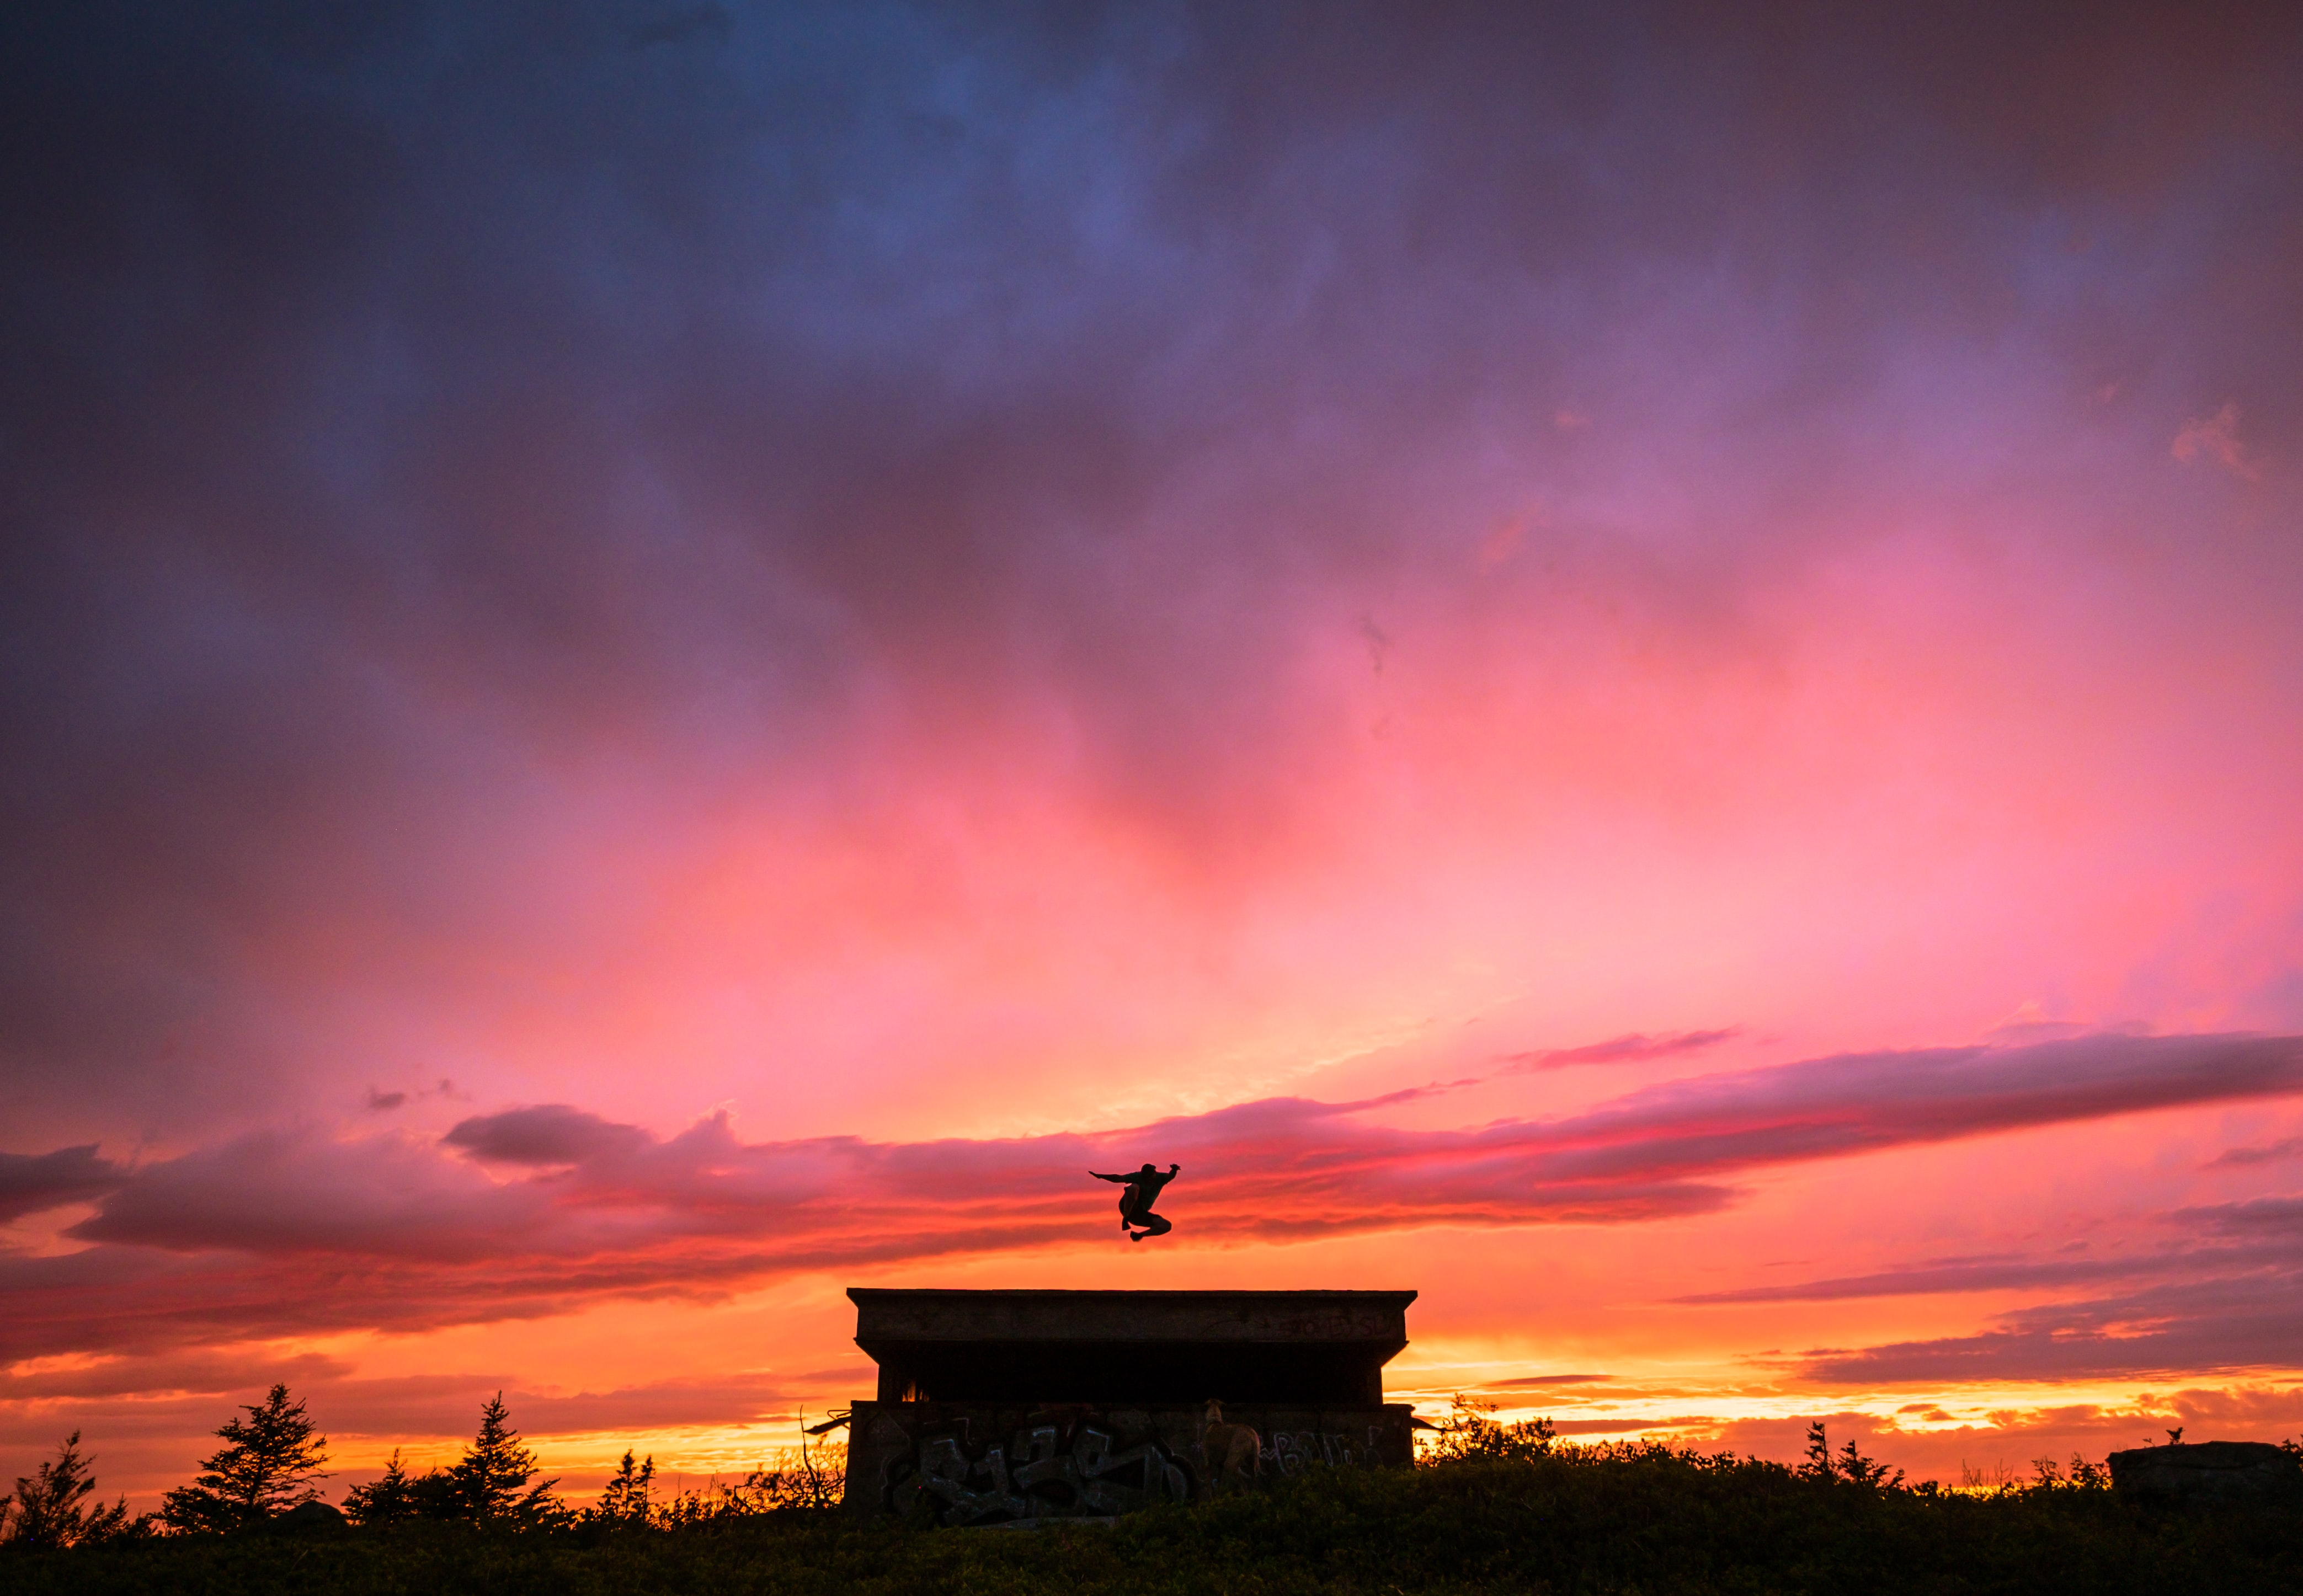 Man jumping from building in Duncan's cove, silhouetted against a fiery sky with pink clouds